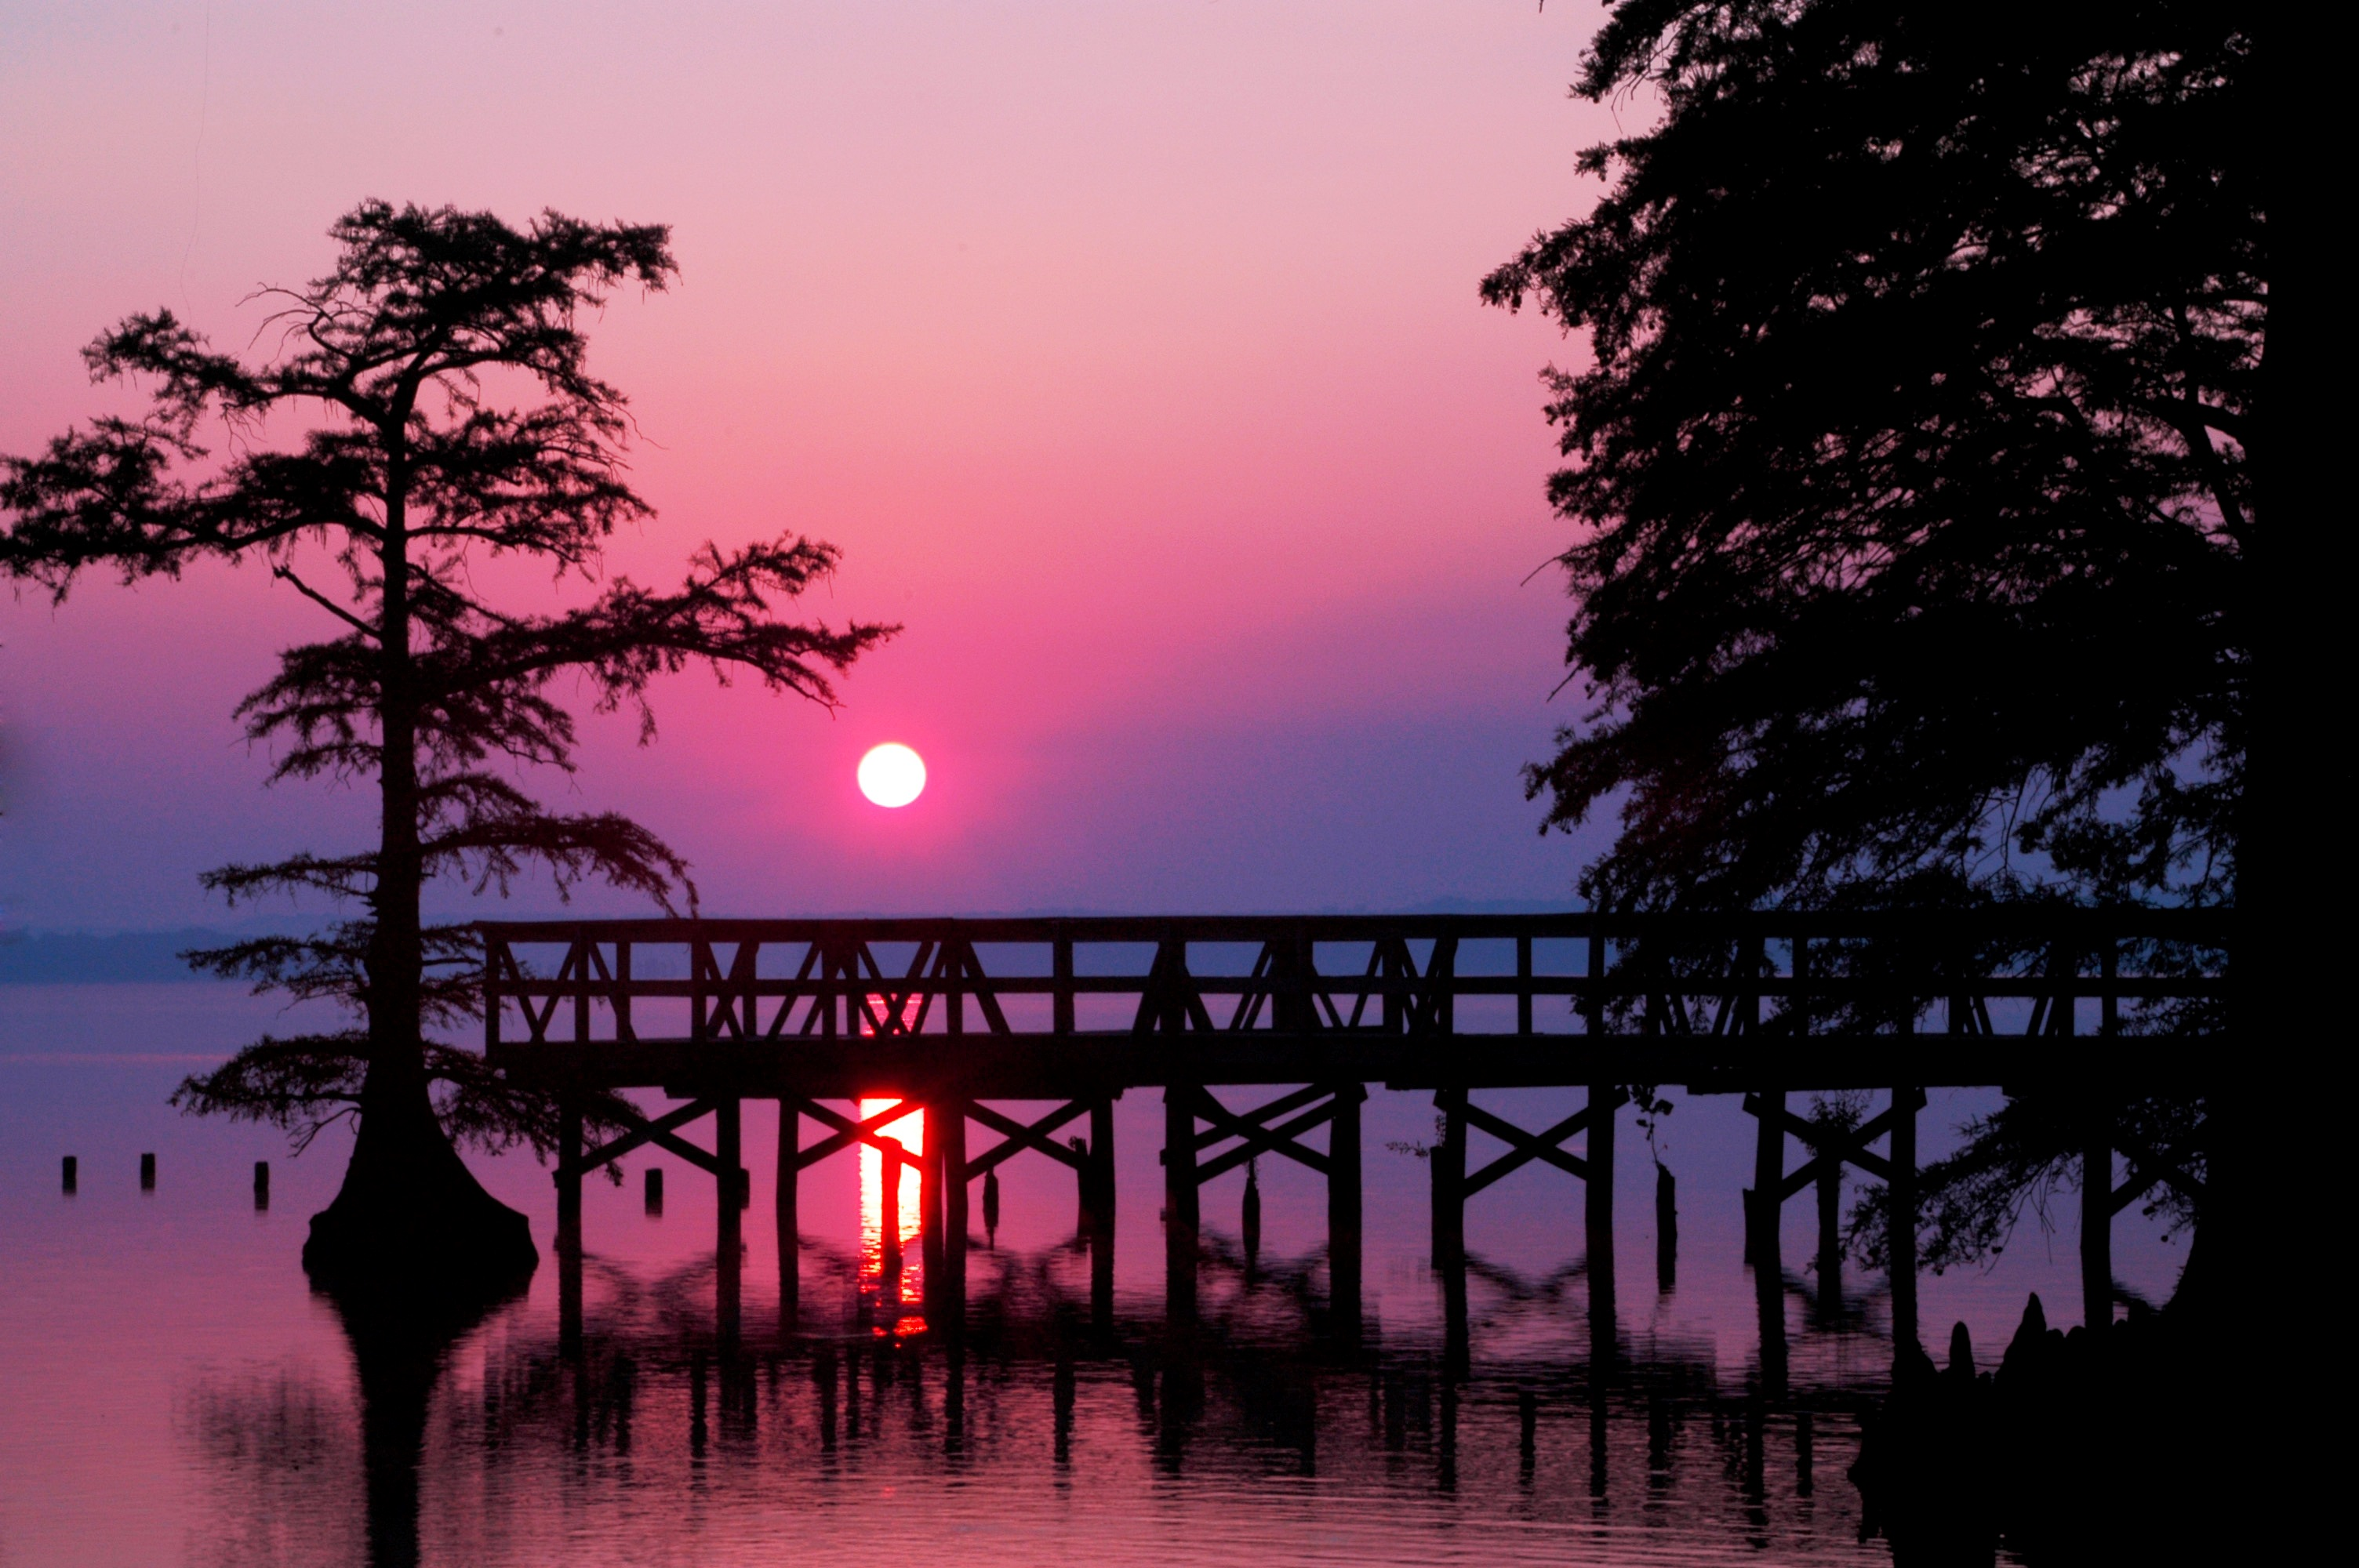 Visit Reelfoot Lake – Reelfoot Lake Tourism Council